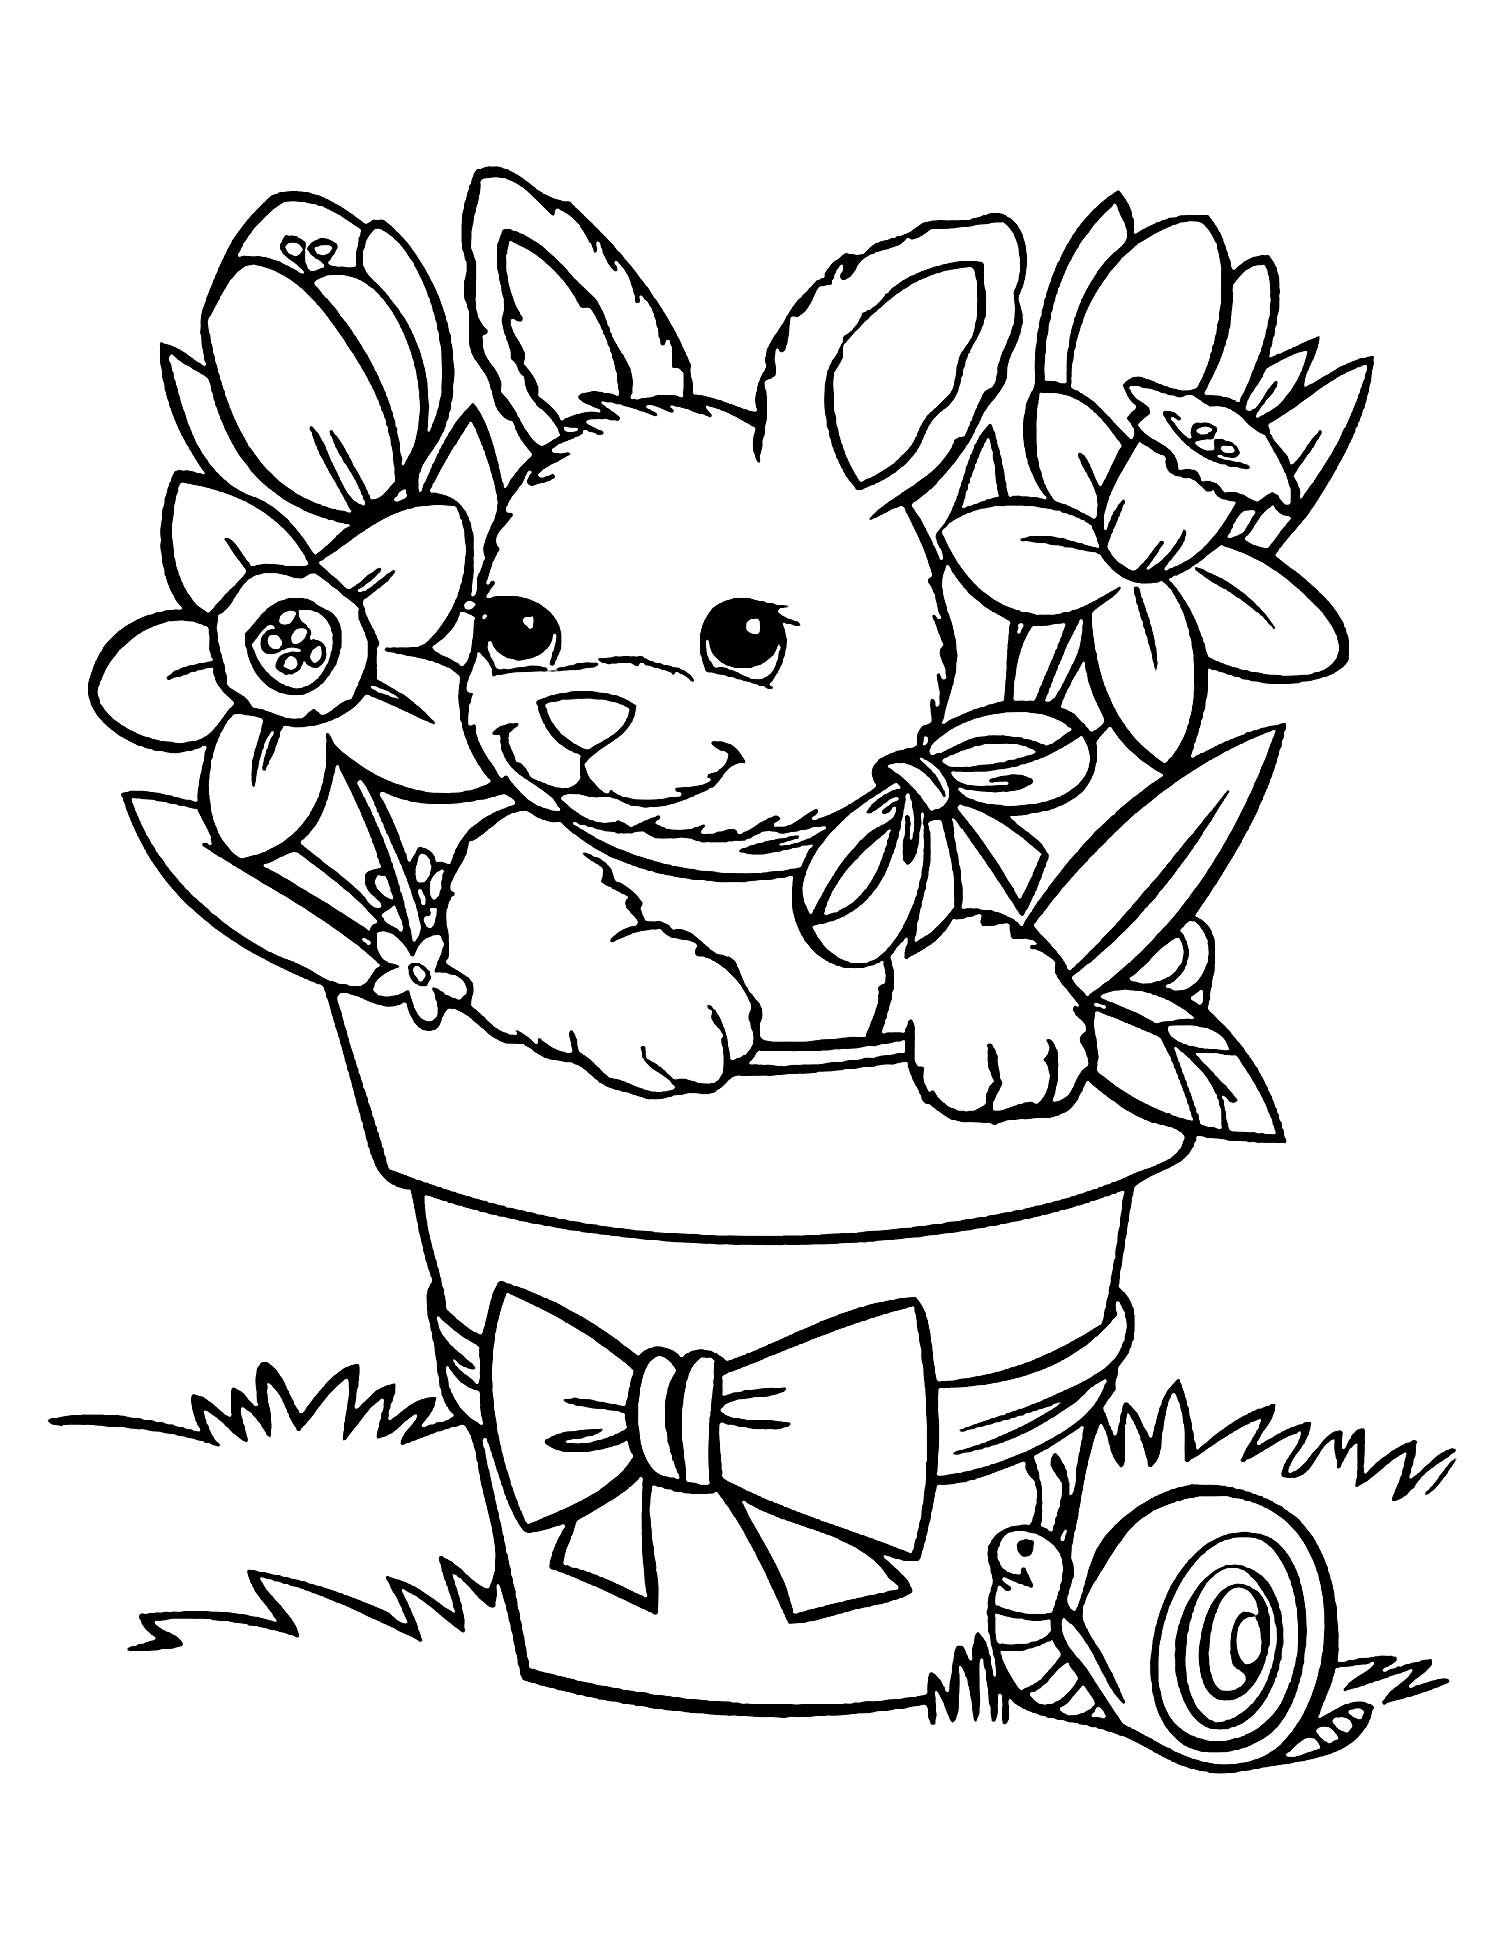 rabbit coloring sheet bunny rabbit coloring pages to download and print for free coloring rabbit sheet